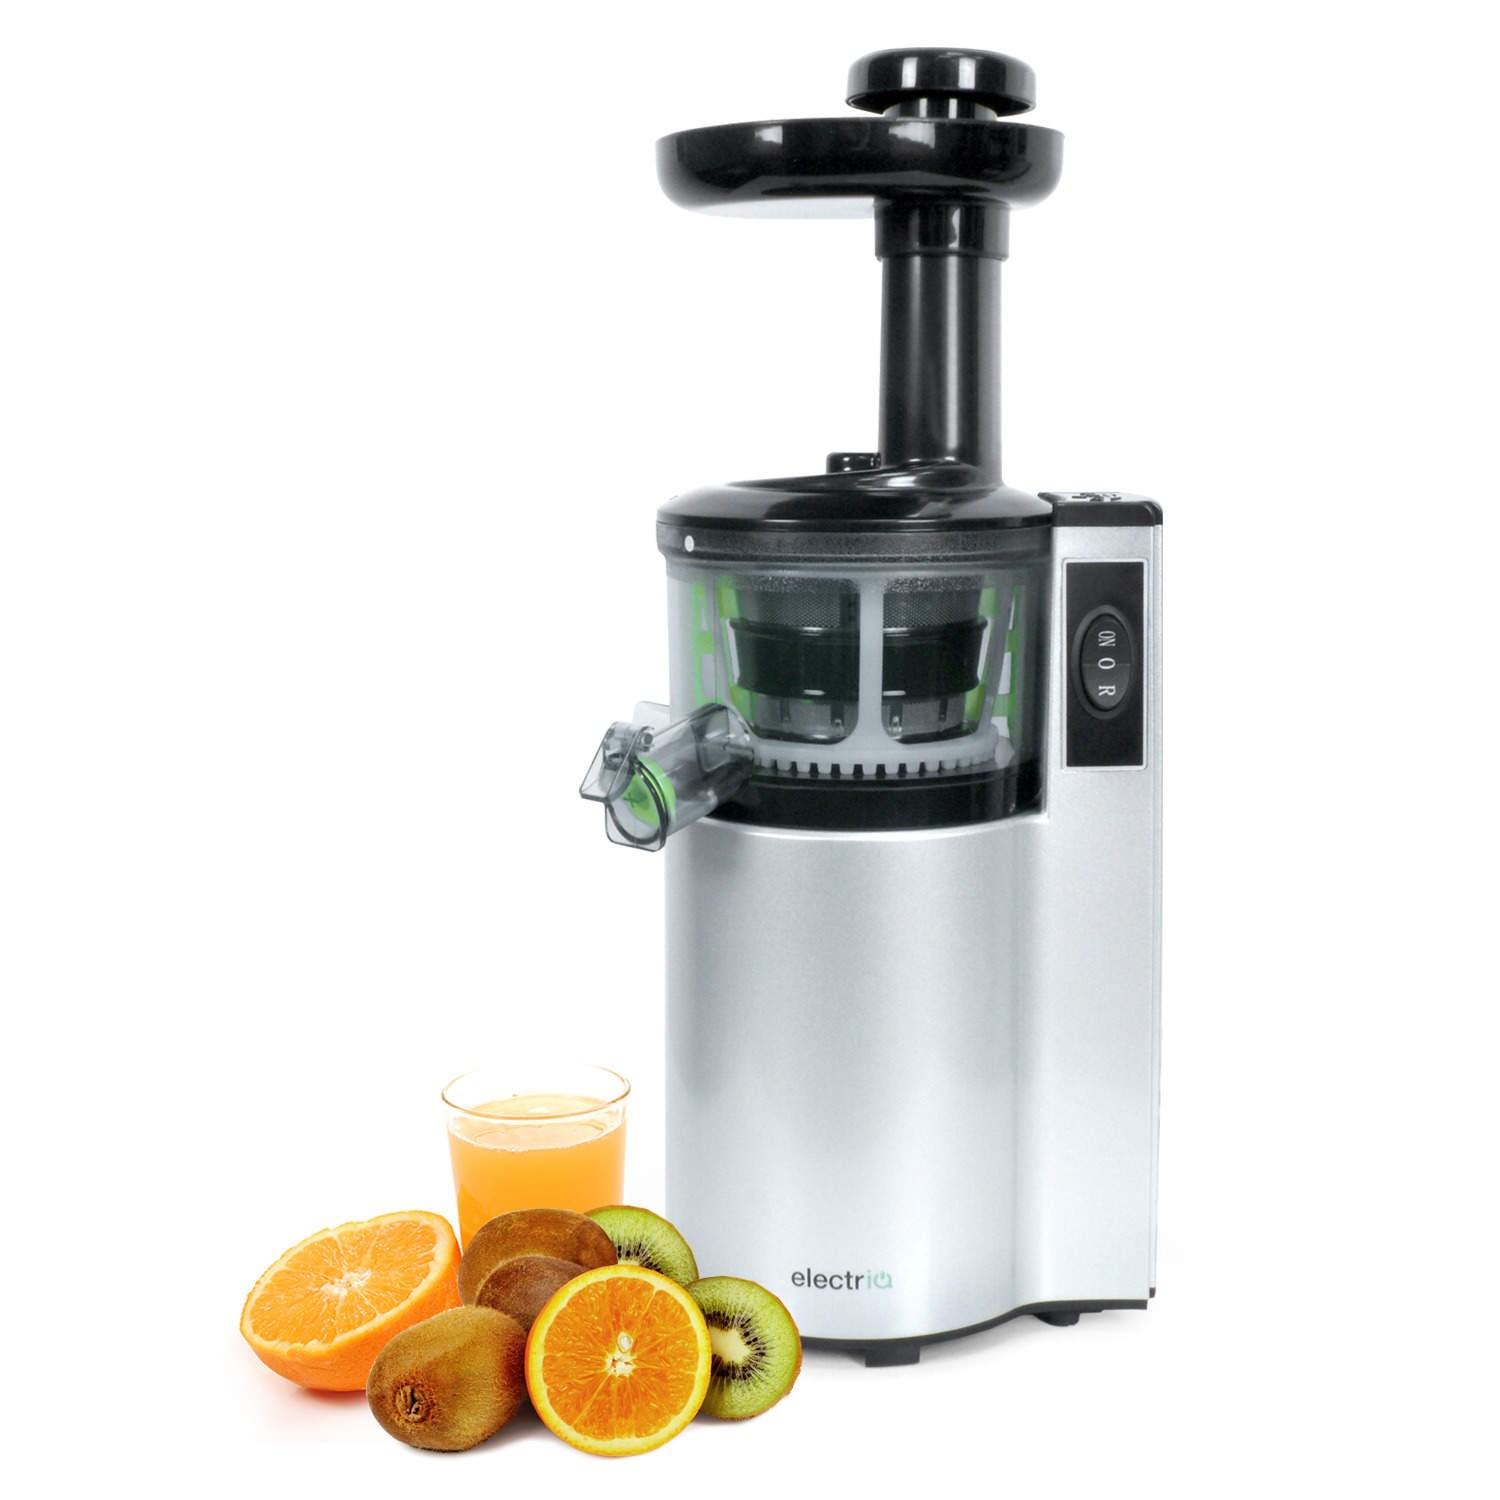 Slow Juicer Malta : ElectriQ vertical Slow Masticating Juicer Fruit vegetable Juice Extractor eBay